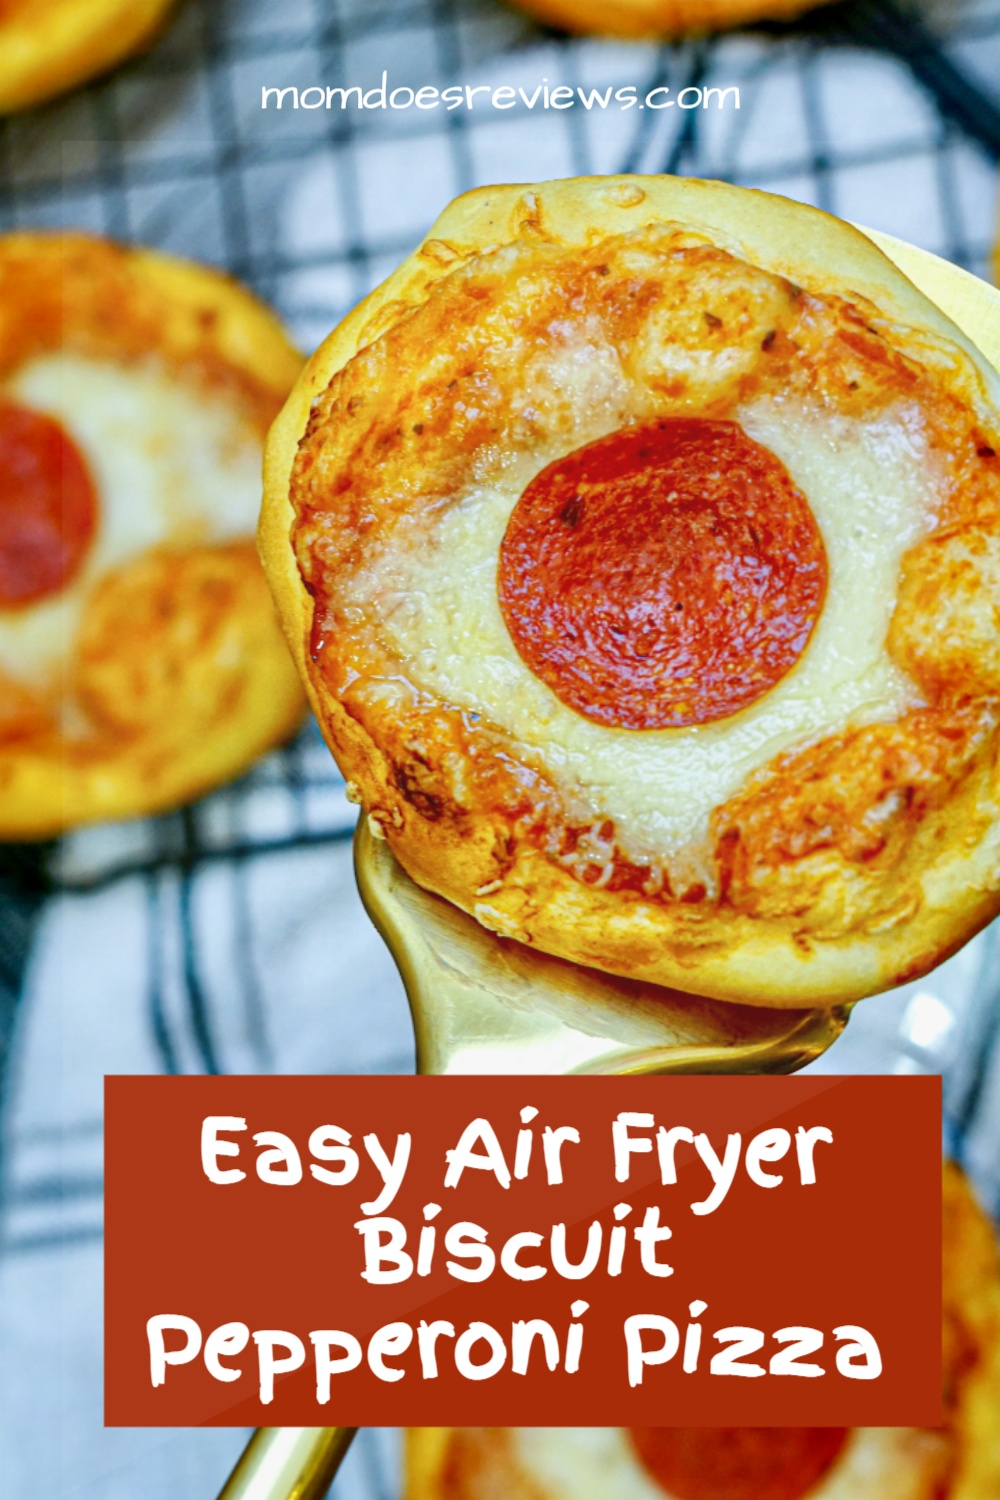 How to Make Air Fryer Biscuit Pepperoni Pizza#easypizza #biscuitpizza #funfood